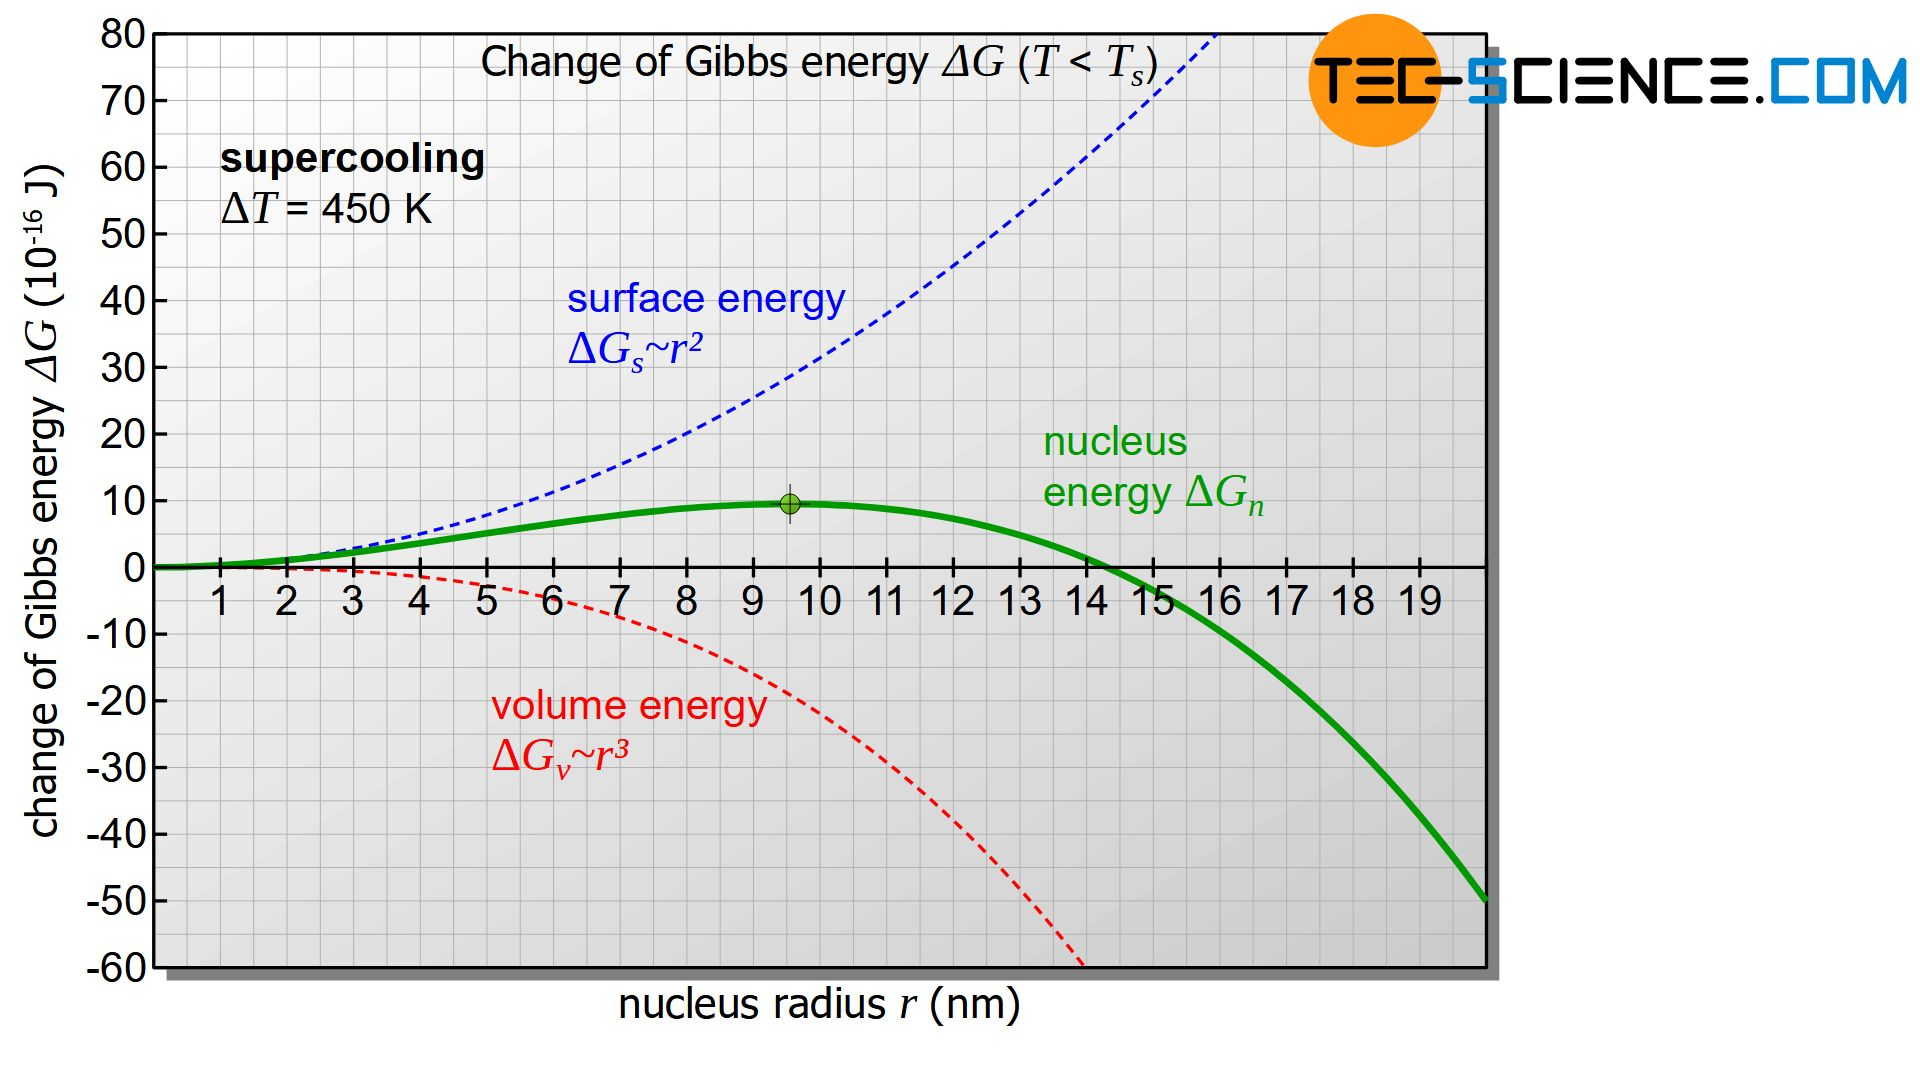 Change of Gibbs energy as a function of the nucleation radius at undercooling